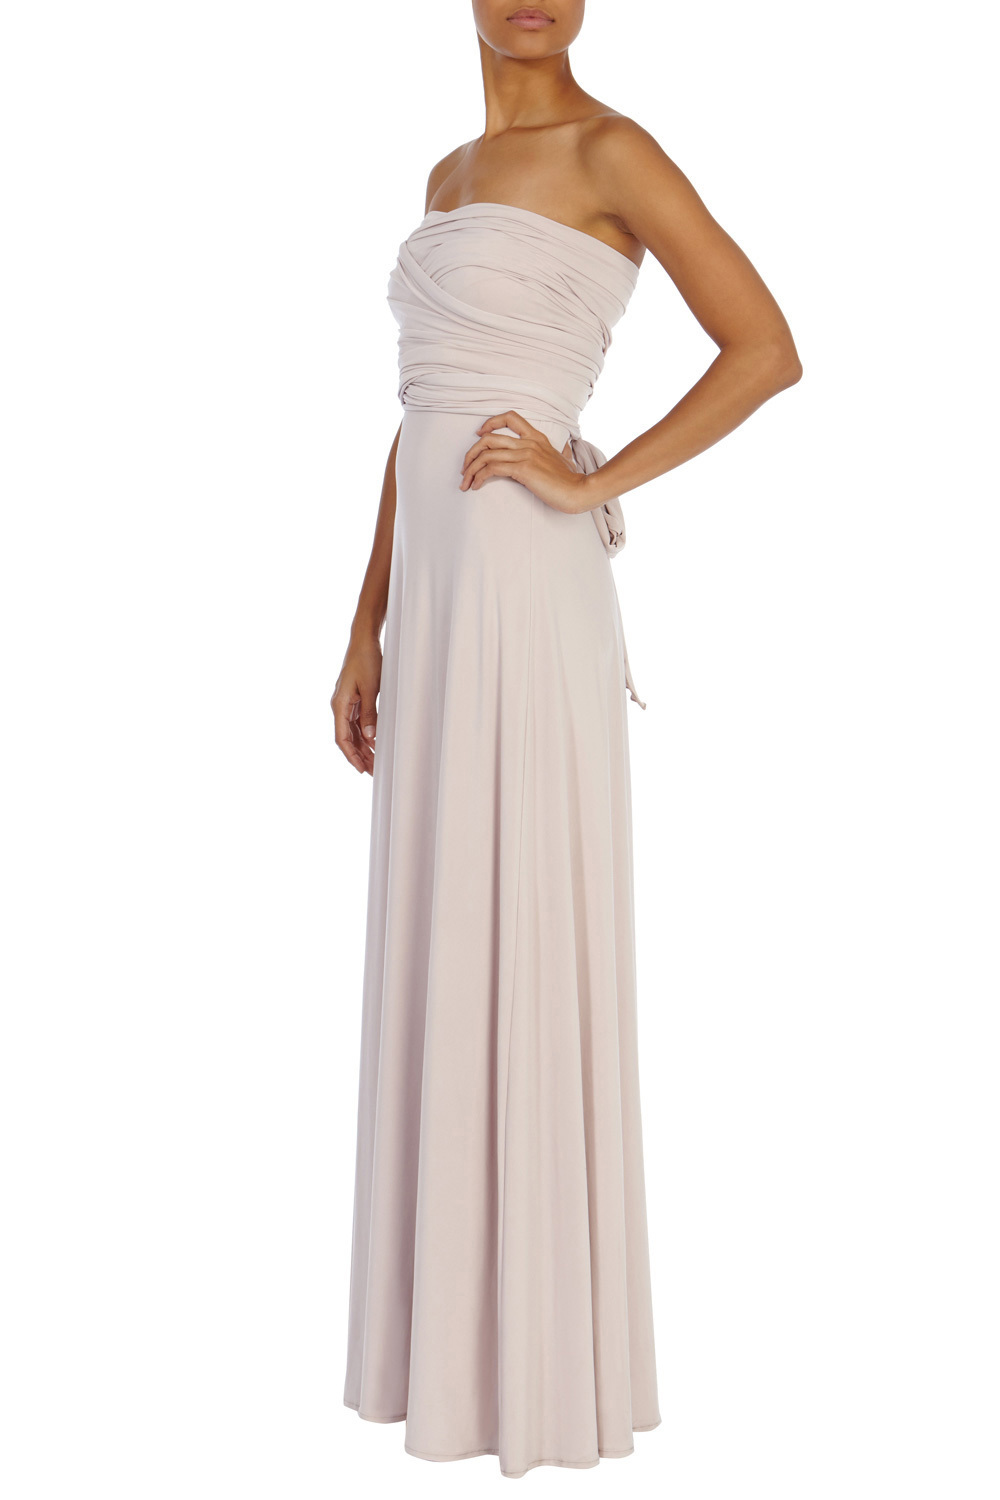 Corwin Multi Tie Maxi Sl - neckline: strapless (straight/sweetheart); pattern: plain; style: maxi dress; sleeve style: strapless; bust detail: subtle bust detail; predominant colour: nude; occasions: evening; length: floor length; fit: body skimming; fibres: polyester/polyamide - 100%; hip detail: subtle/flattering hip detail; sleeve length: sleeveless; pattern type: fabric; texture group: jersey - stretchy/drapey; season: a/w 2015; wardrobe: event